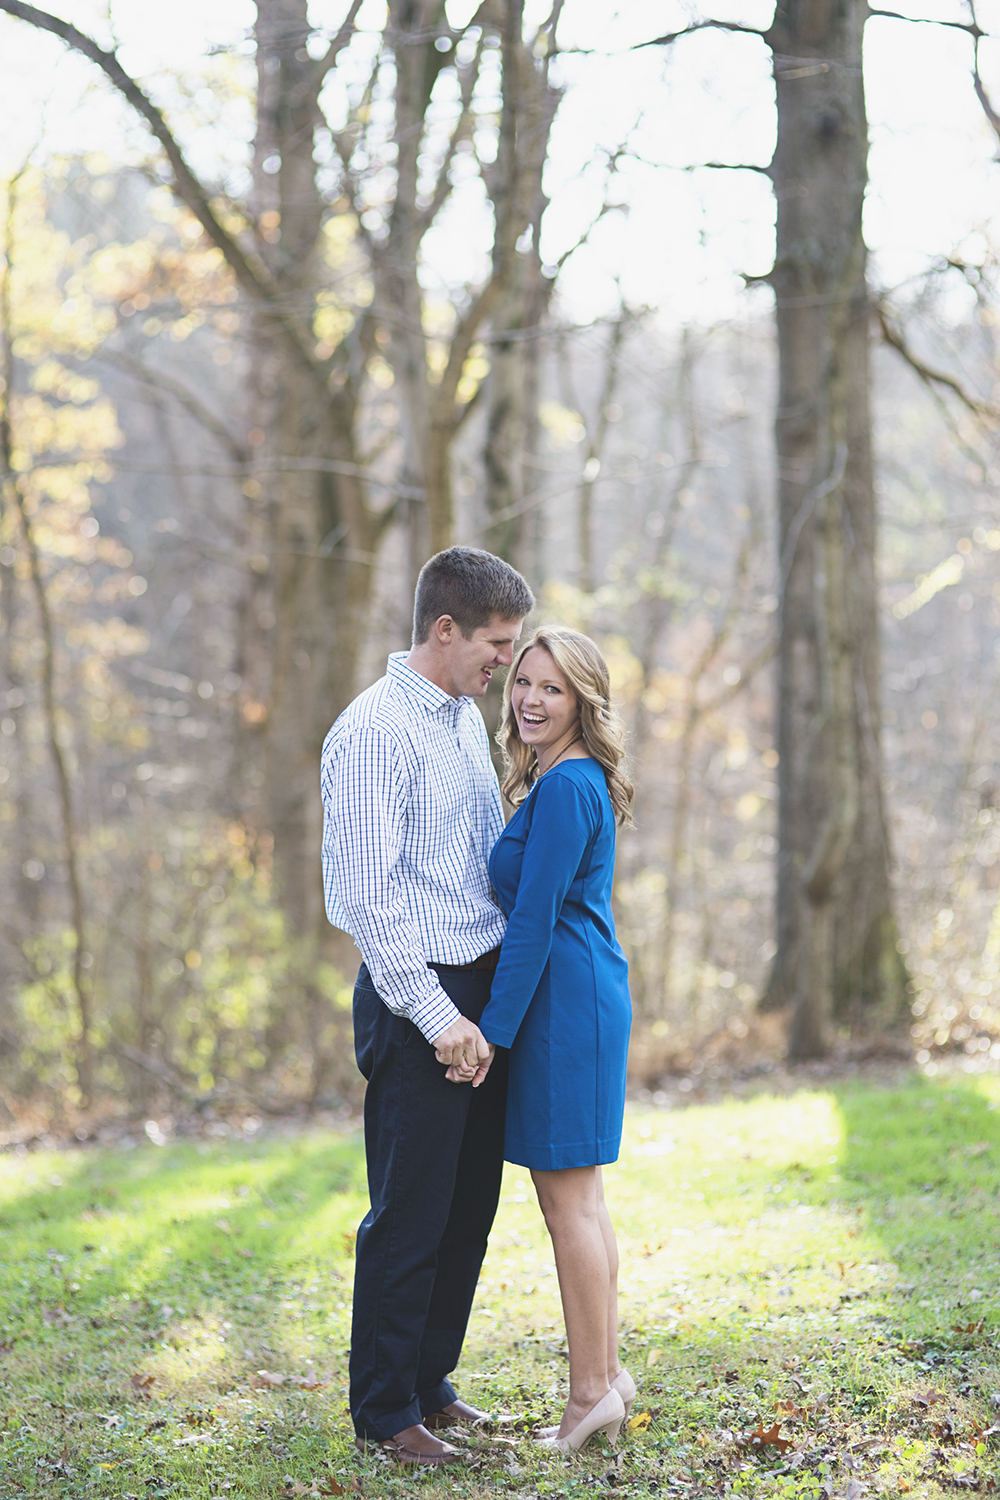 Destination Northern Virginia Engagement Session | Dressy blue and white engagement pictures